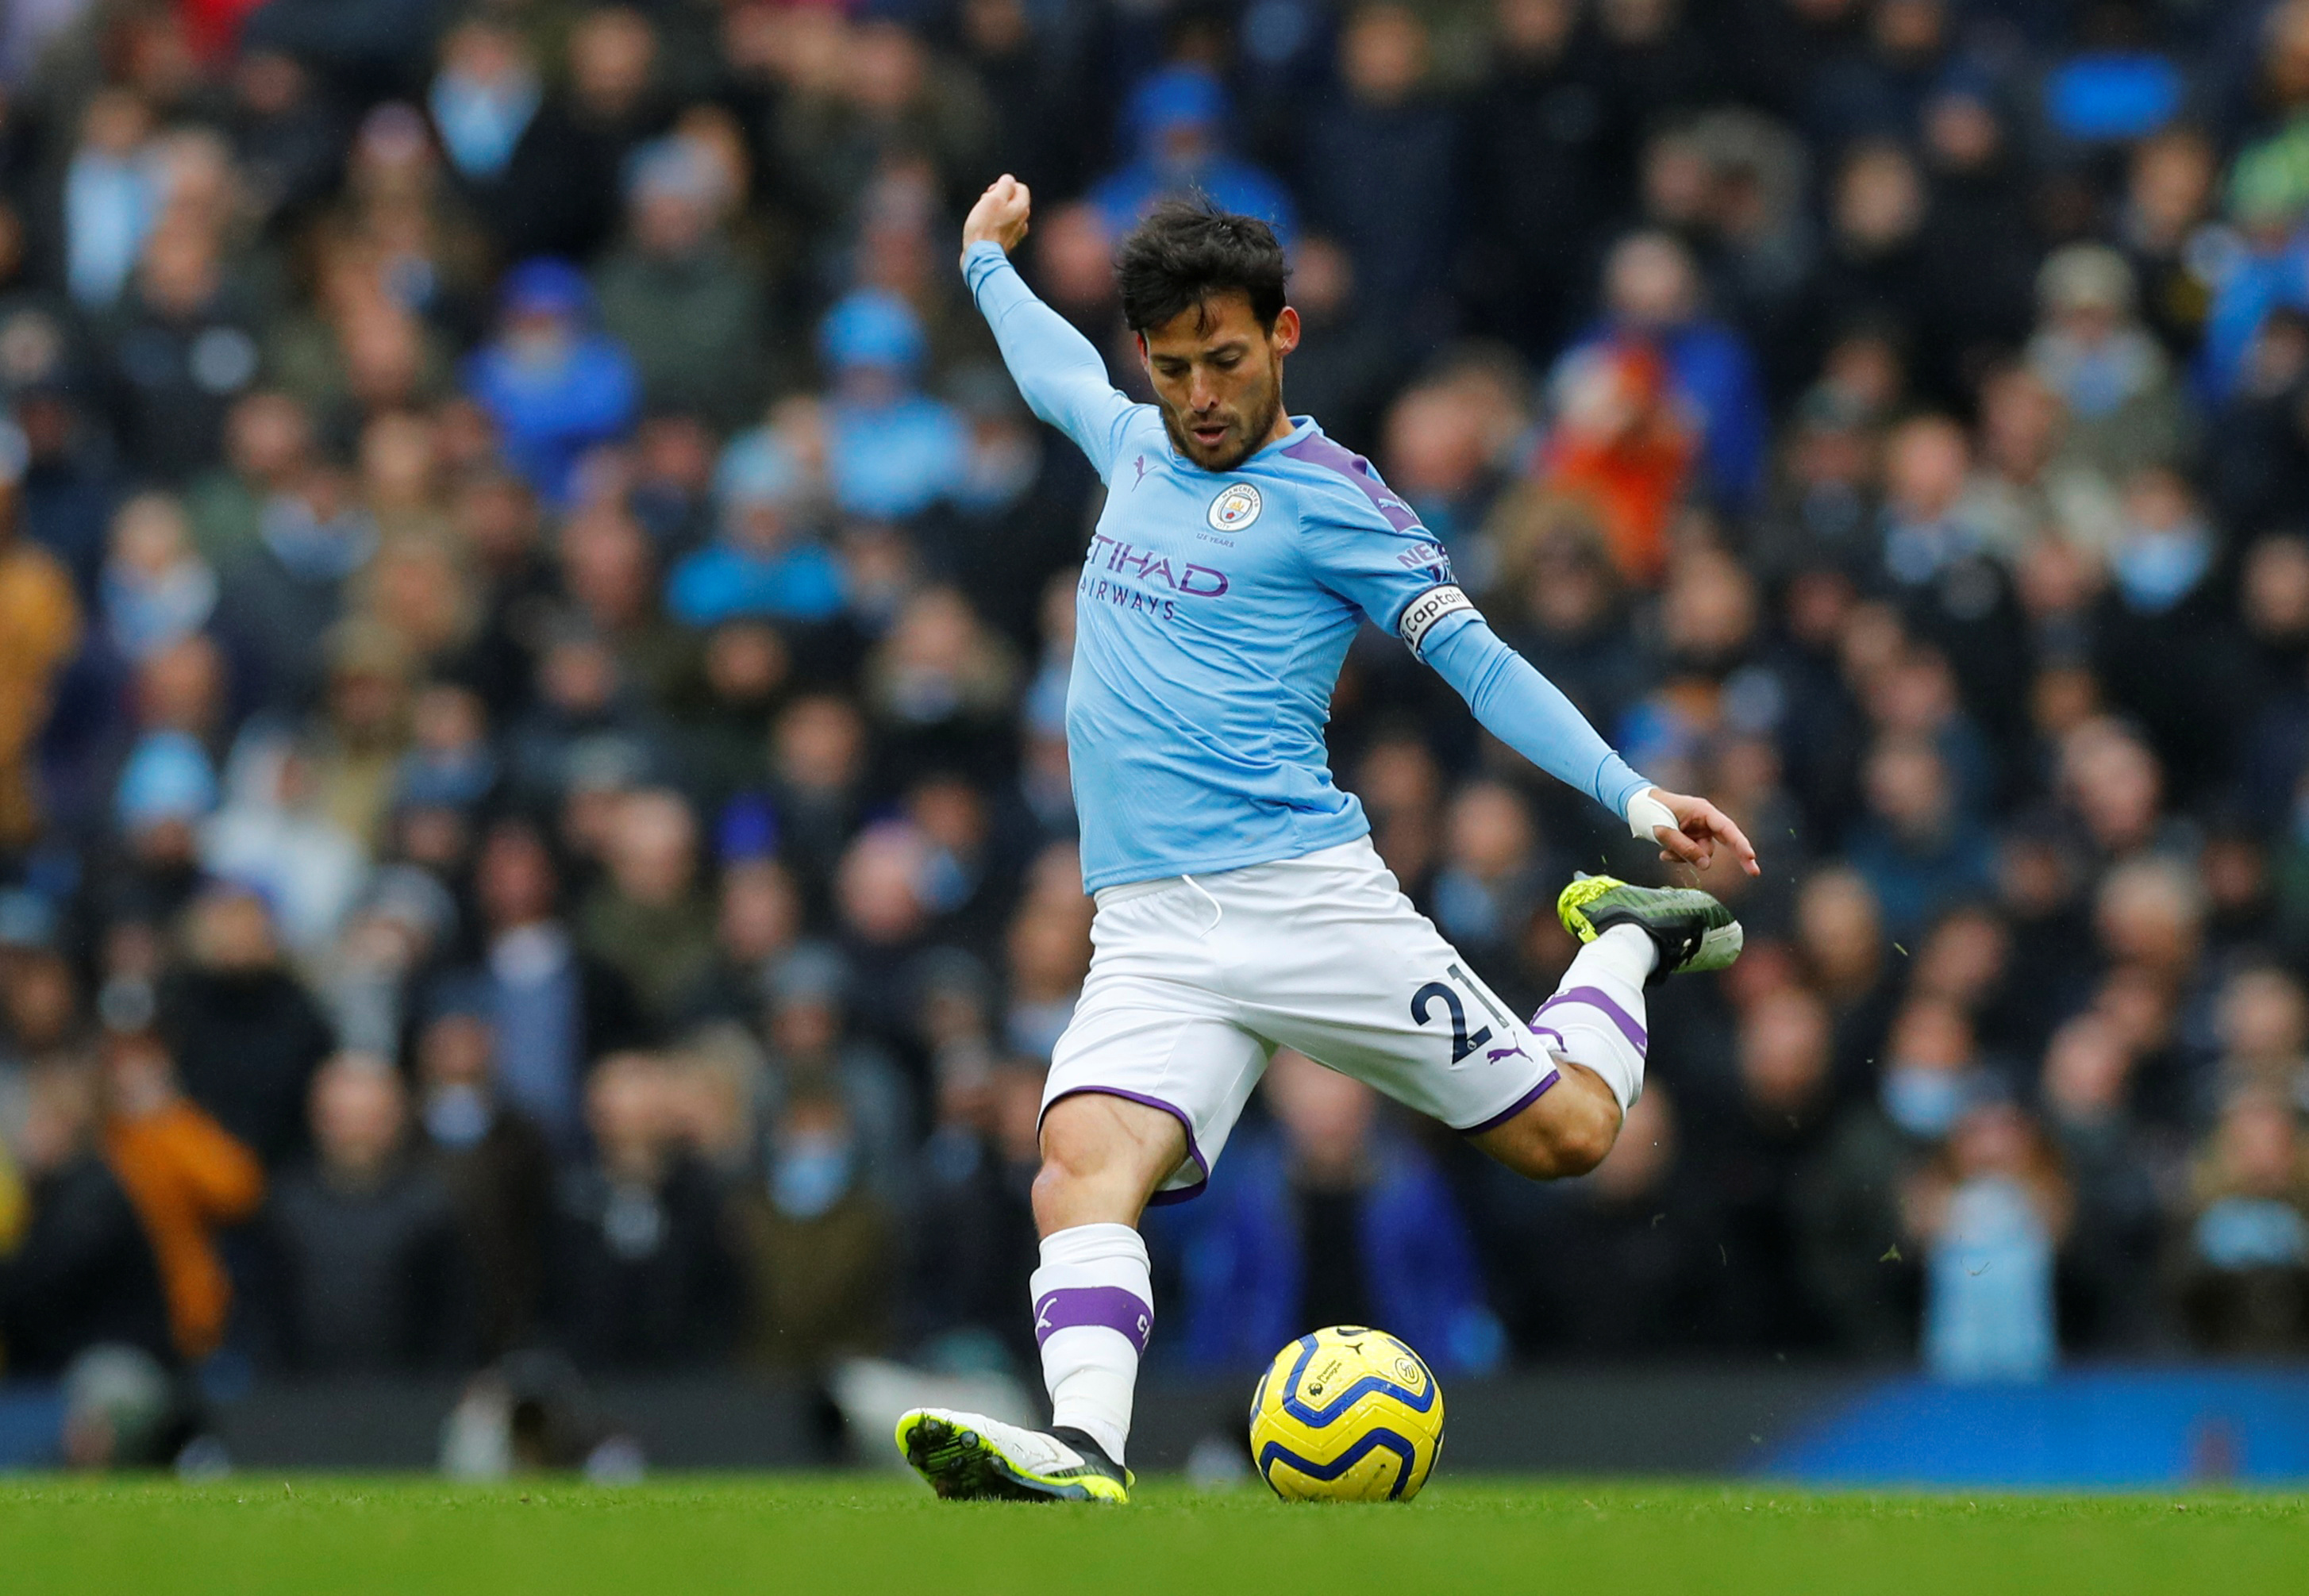 Rested Silva could be excellent City differential in FPL Gameweek 36+